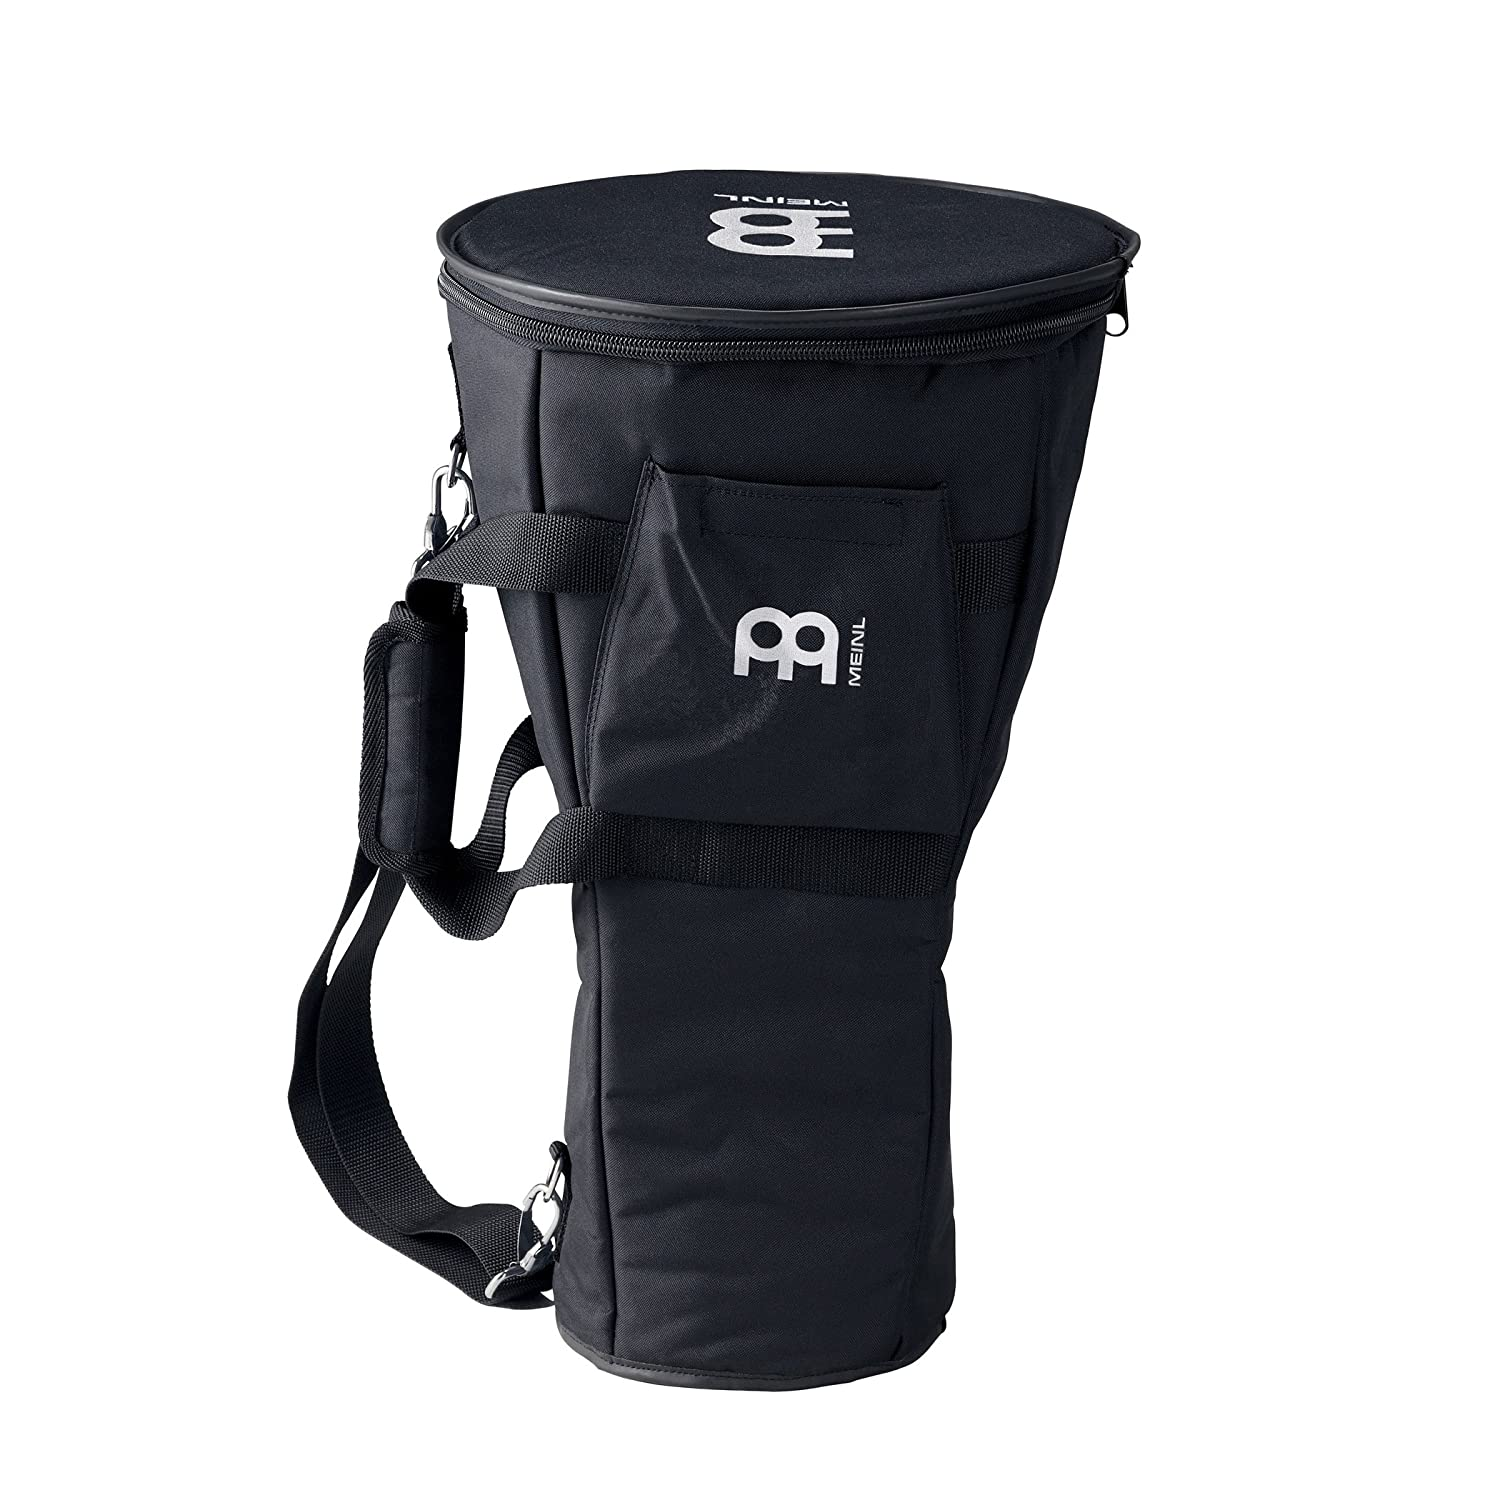 MEINL Percussion マイネル ジャンベバッグ Professional Djembe Bag Small MDJB-S 【国内正規品】